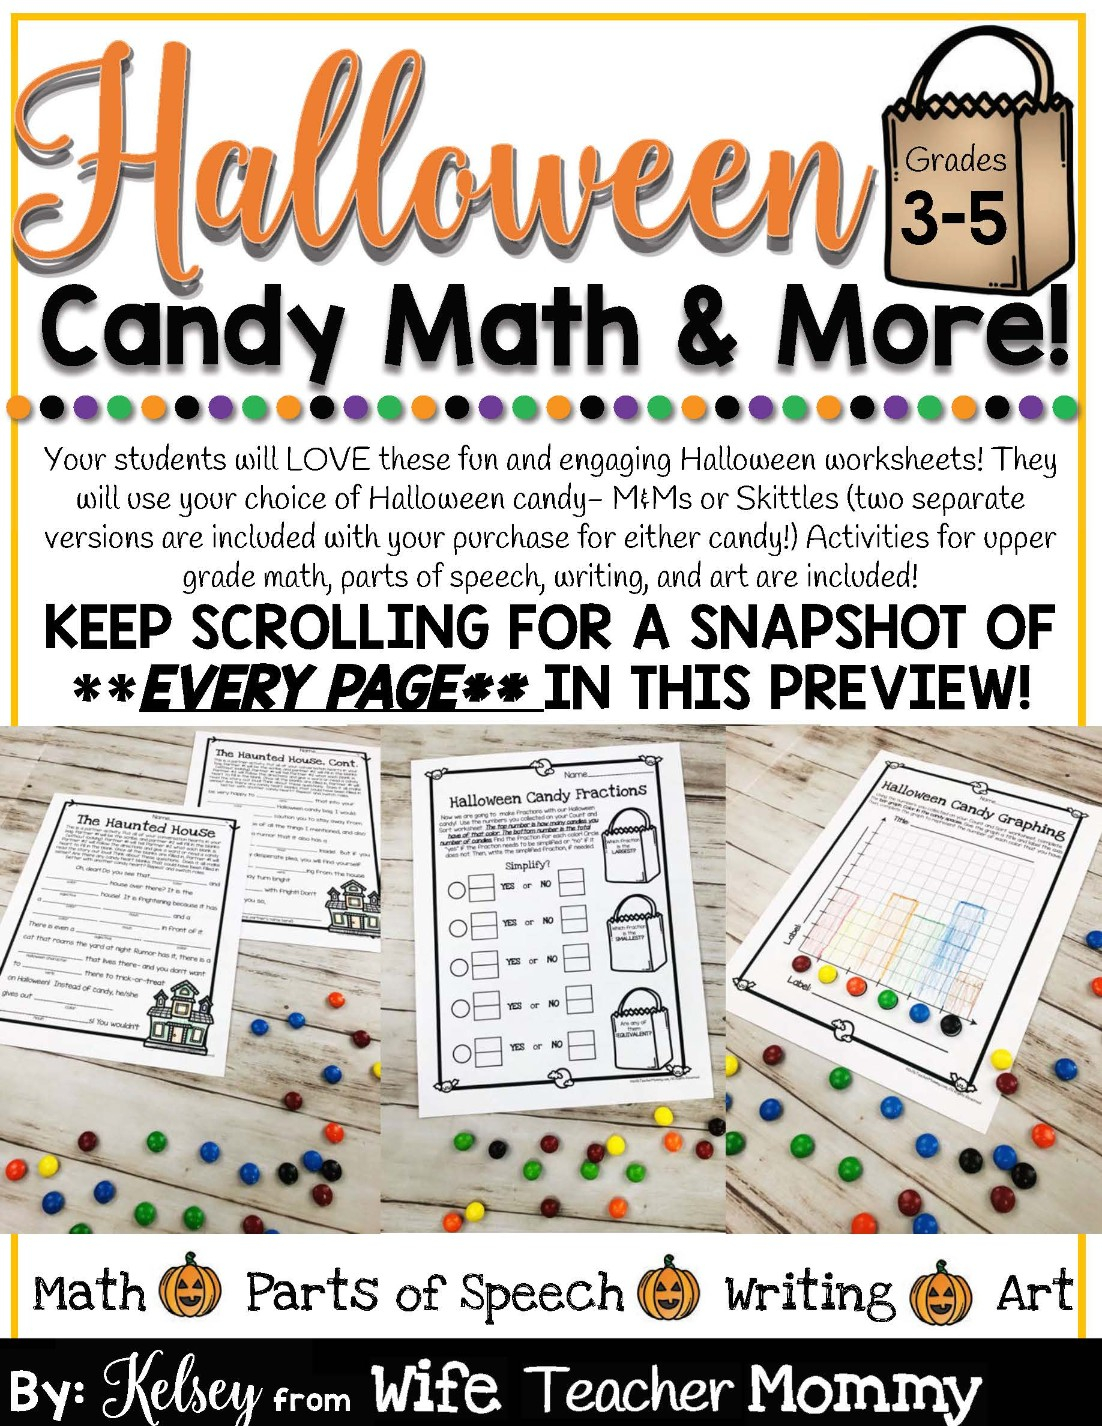 Halloween Candy Math Activities & More For 3Rd, 4Th, 5Th Grade - Wife  Teacher Mommy